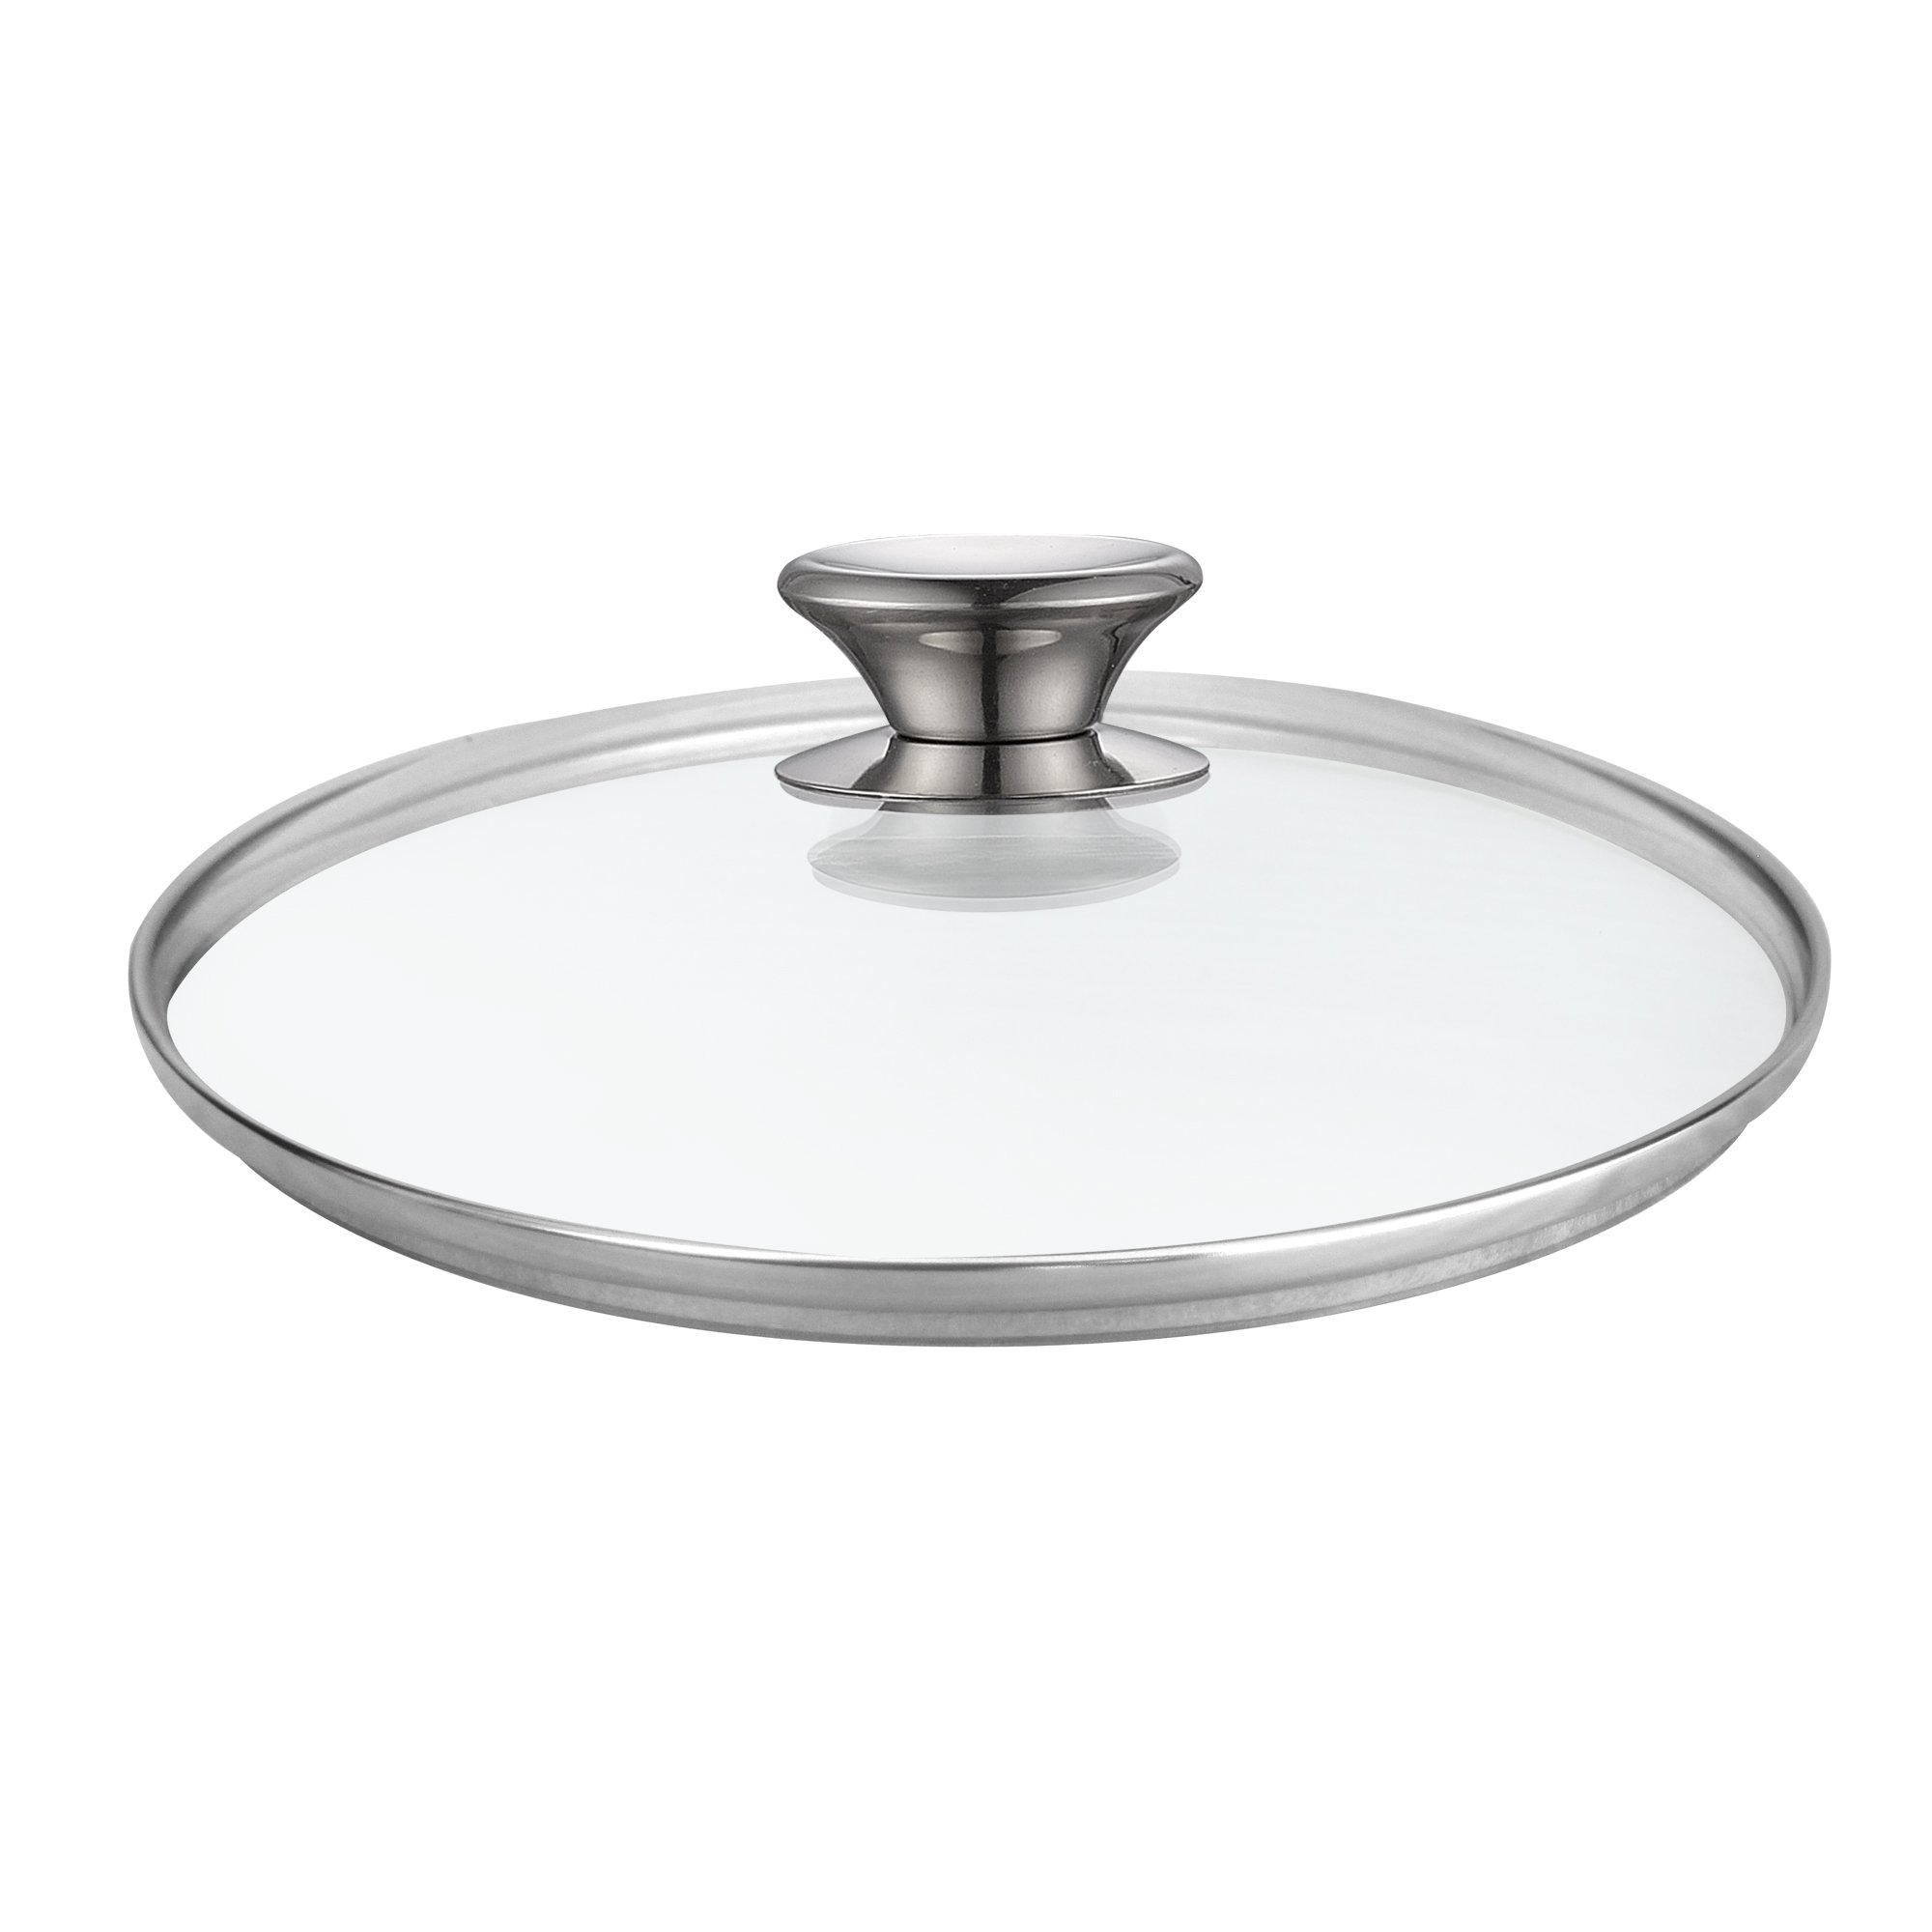 Cook N Home 02574 Tempered Glass Lid, 12-inch/30cm, Clear